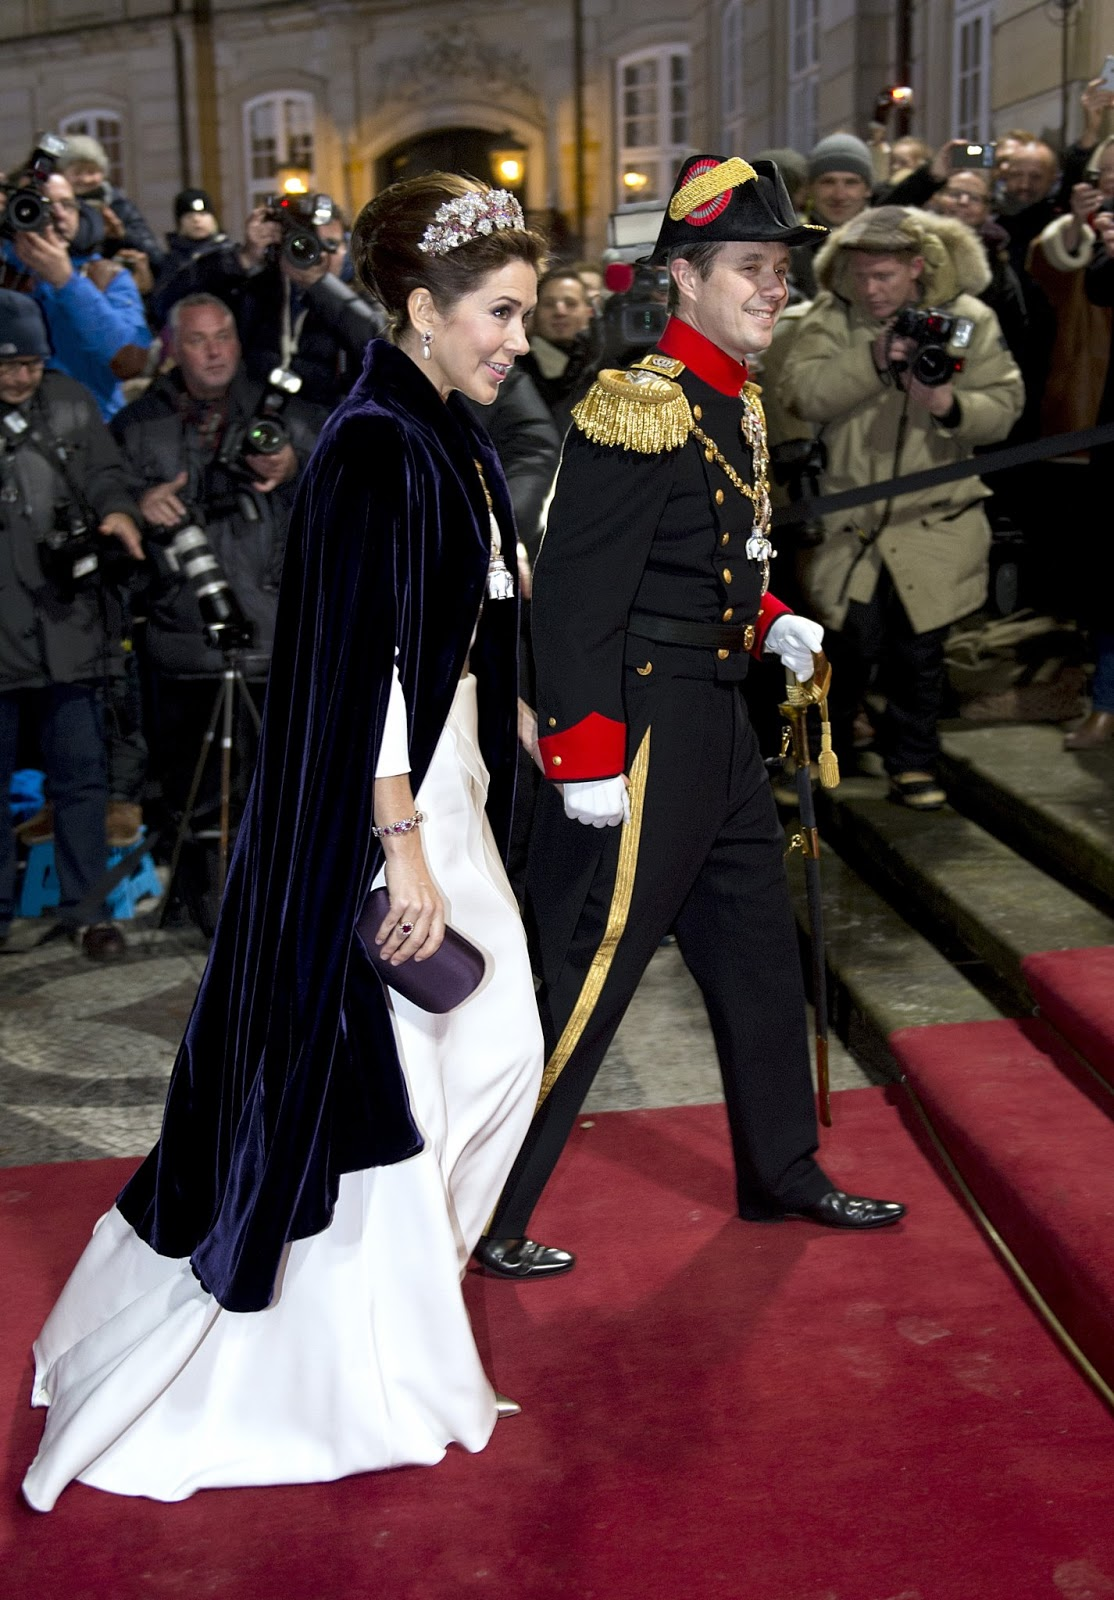 Danish Royal Family on New Years reception 2015